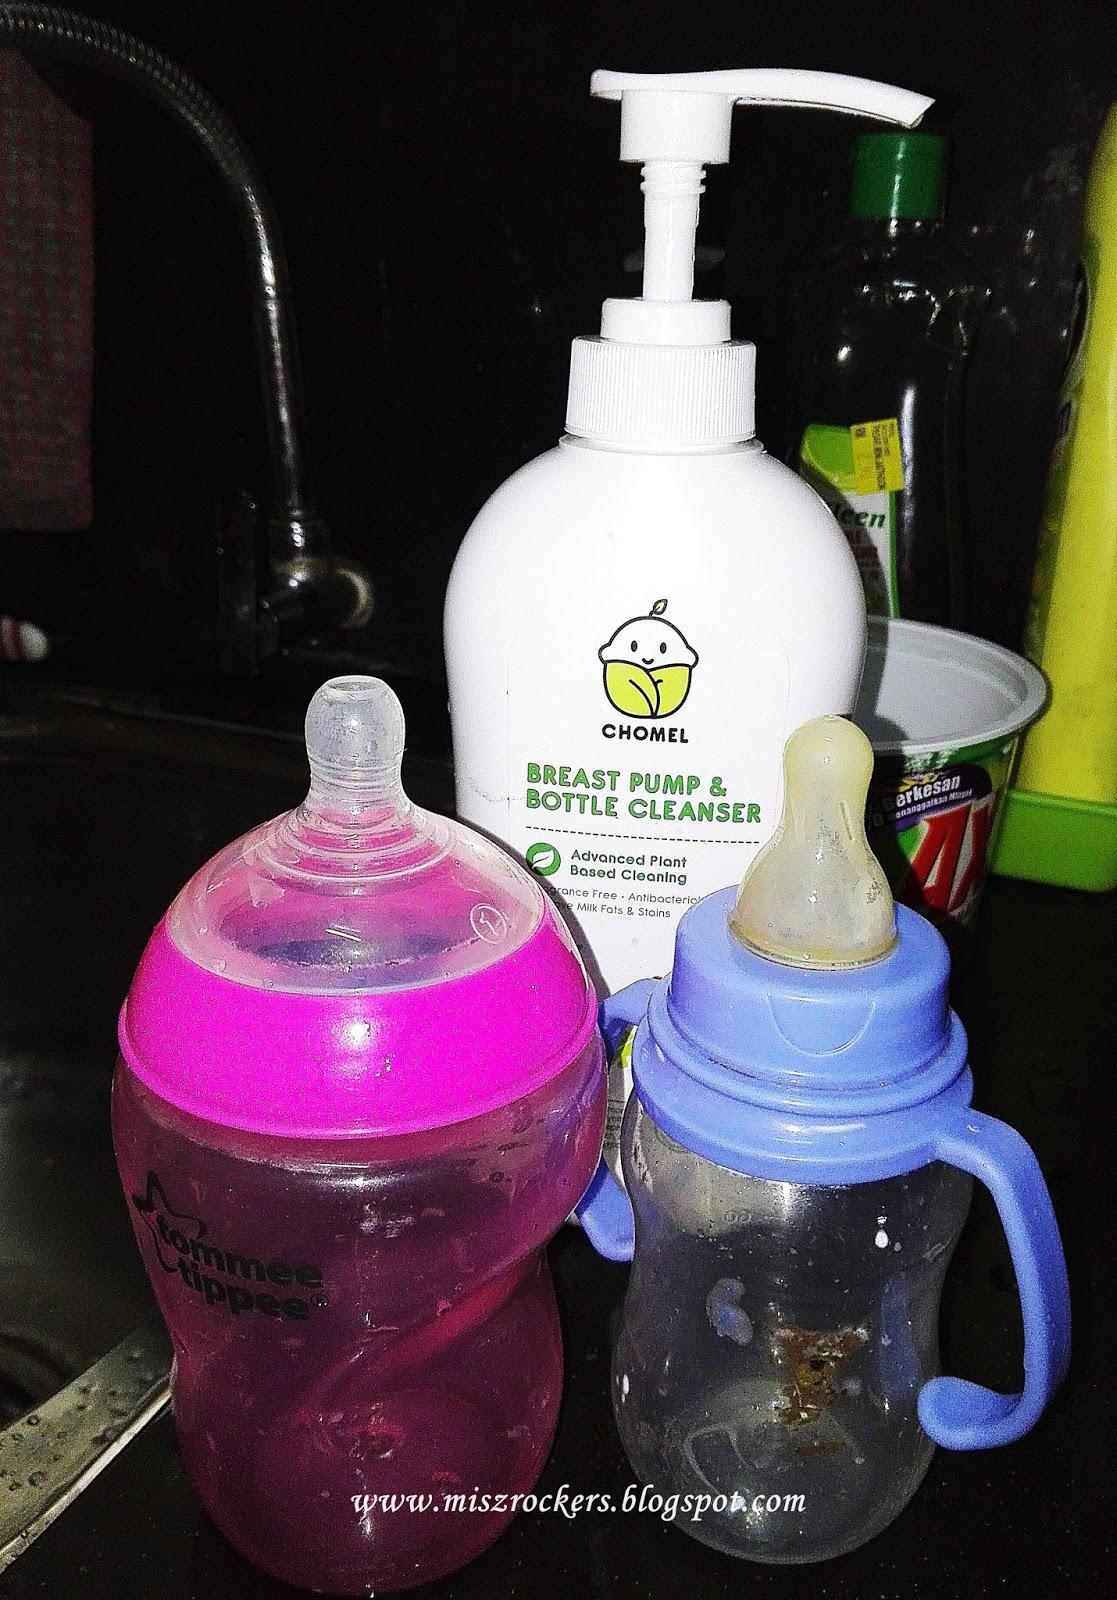 BREAST PUMP & BOTTLE CLEANSER